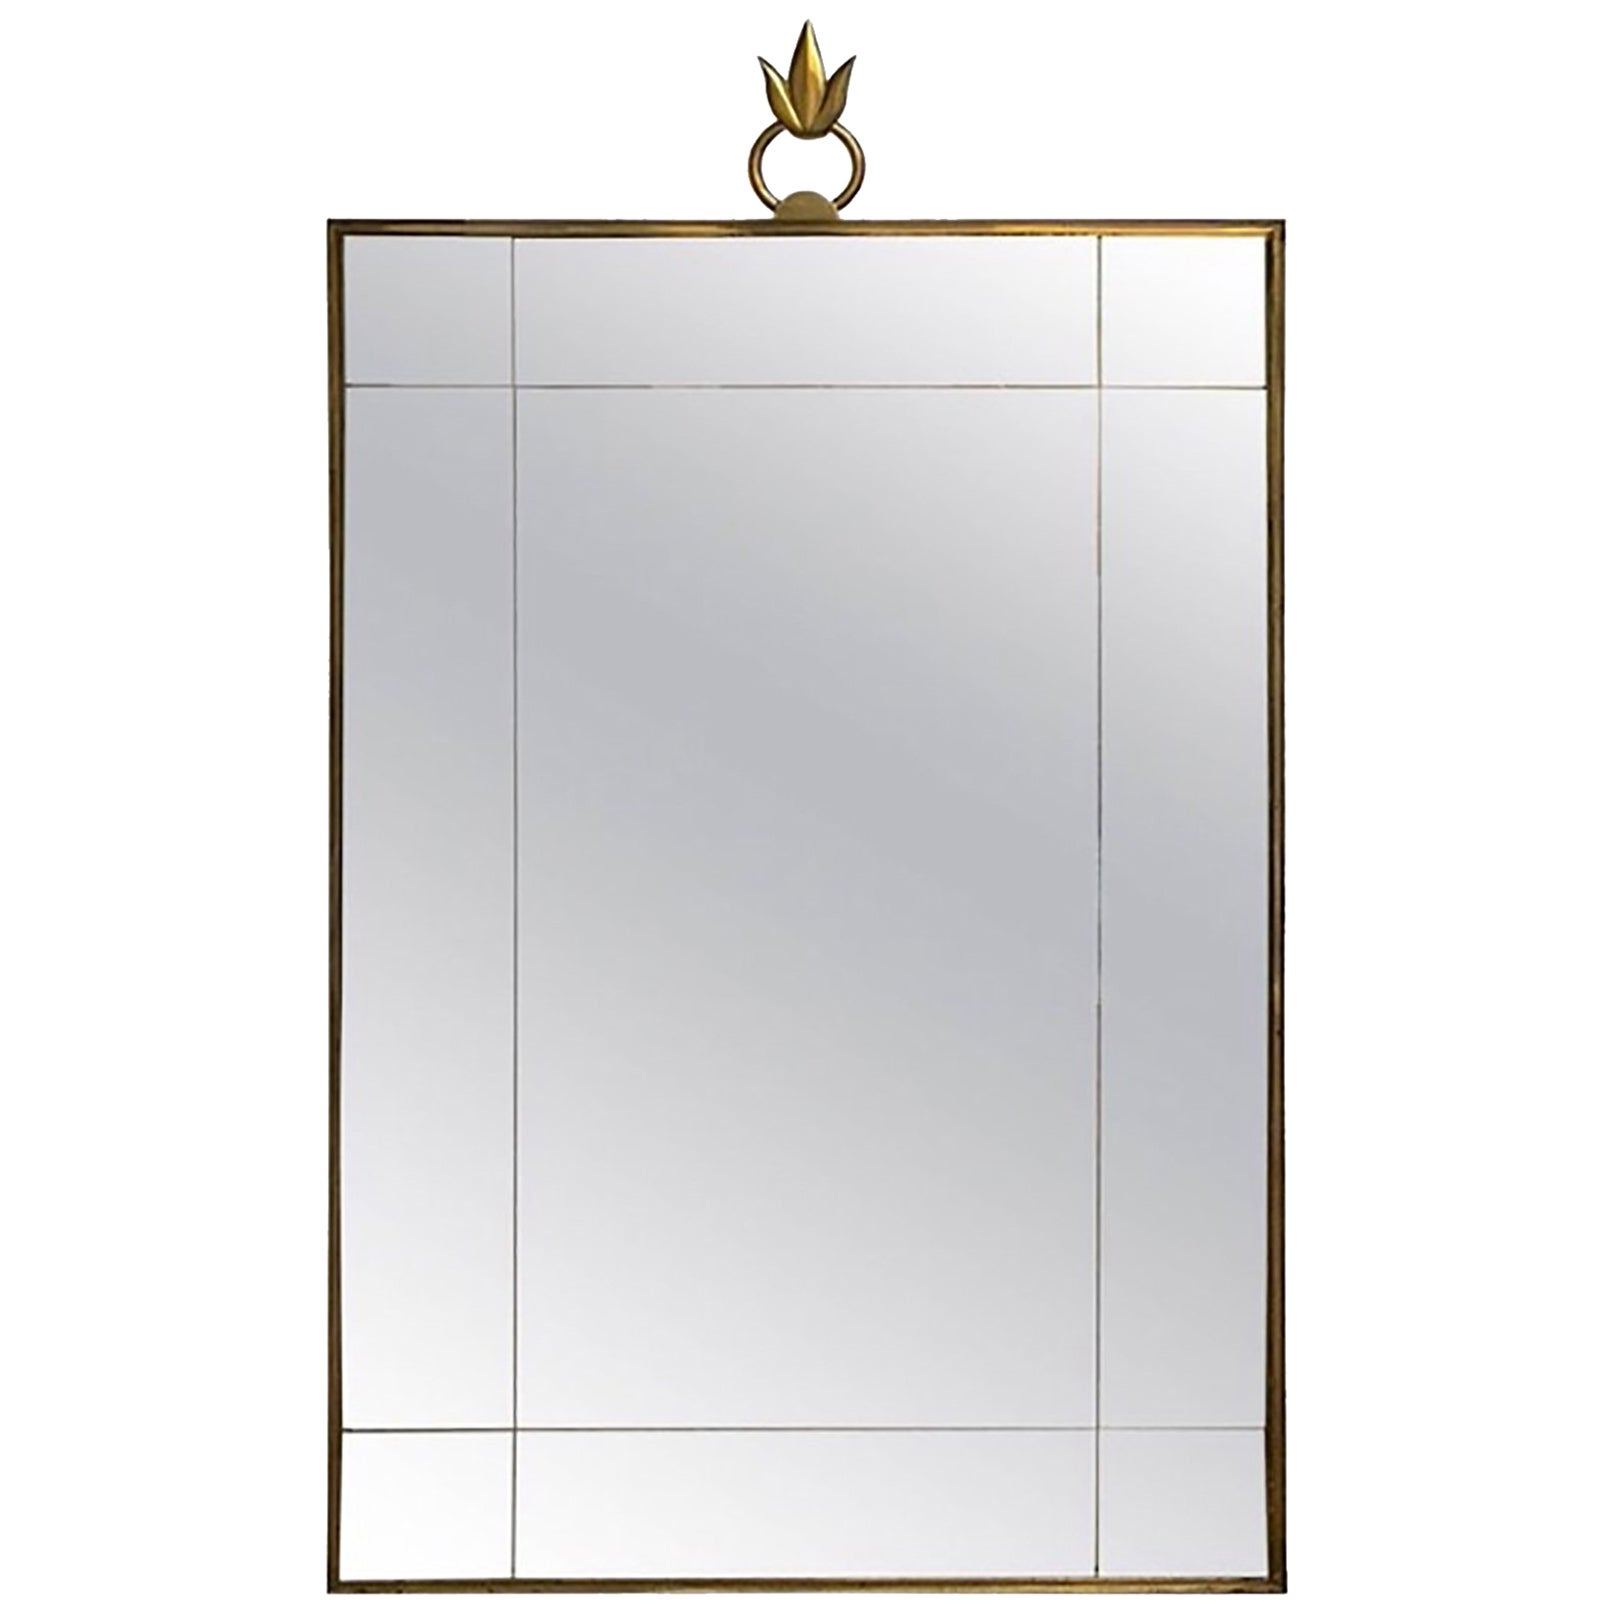 2019 Art Deco French Wall Mirror In The Style Of Andre Arbus Regarding Dandre Wall Mirrors (View 1 of 20)